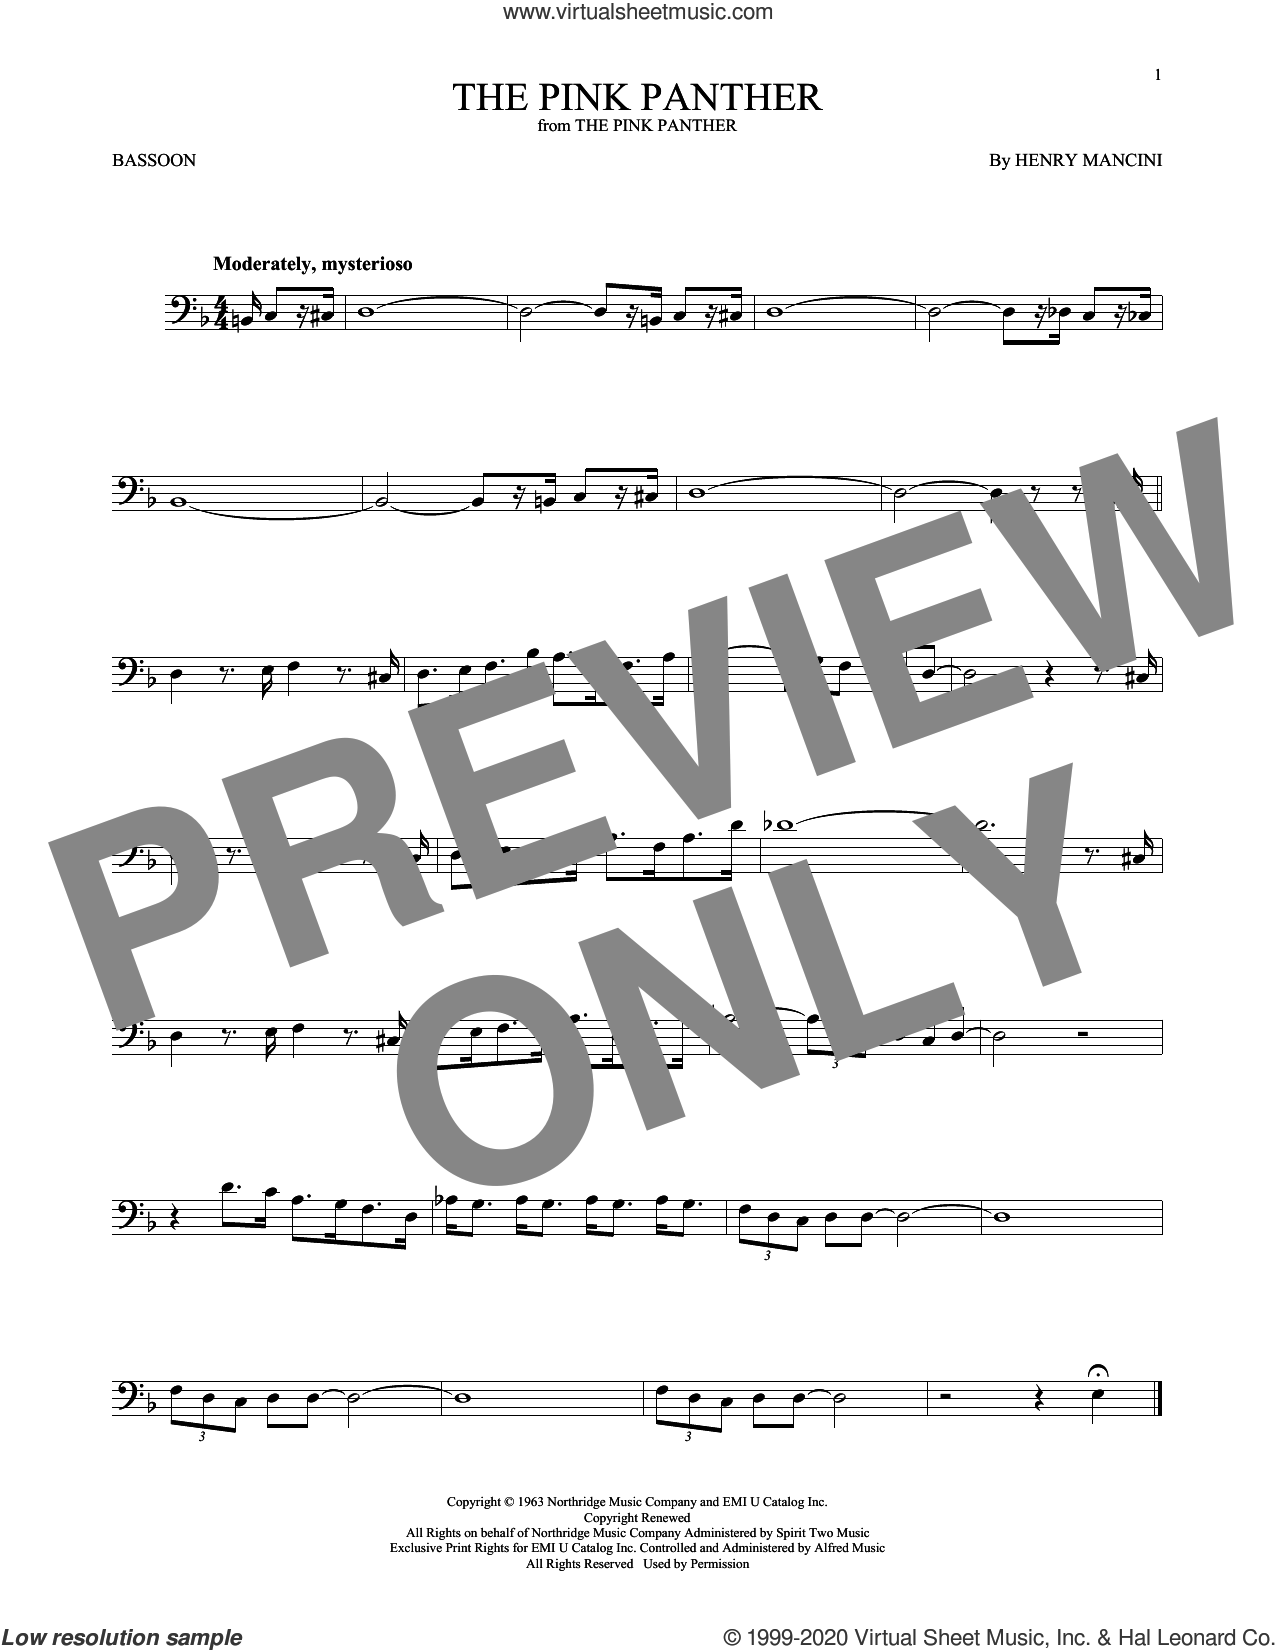 The Pink Panther sheet music for Bassoon Solo by Henry Mancini, intermediate skill level